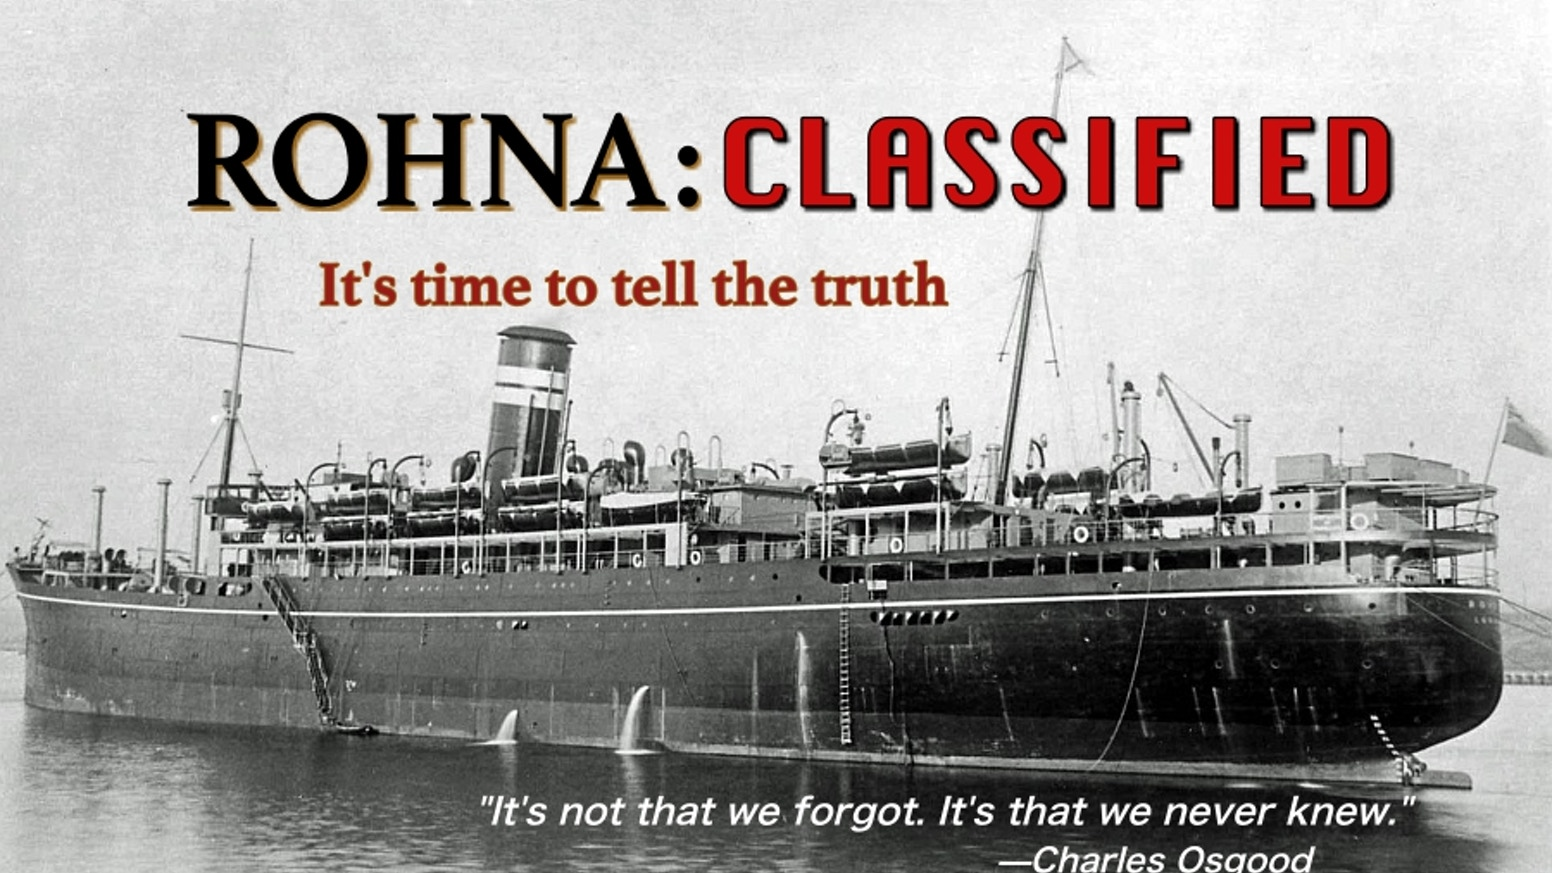 We reached our goal and are continuing to work hard on the Rohna: Classified WWII documentary! If you would still like to support this film, please click Donate. It will take you to the Donate Page on our website. THANK YOU! -The Rohna Classified team